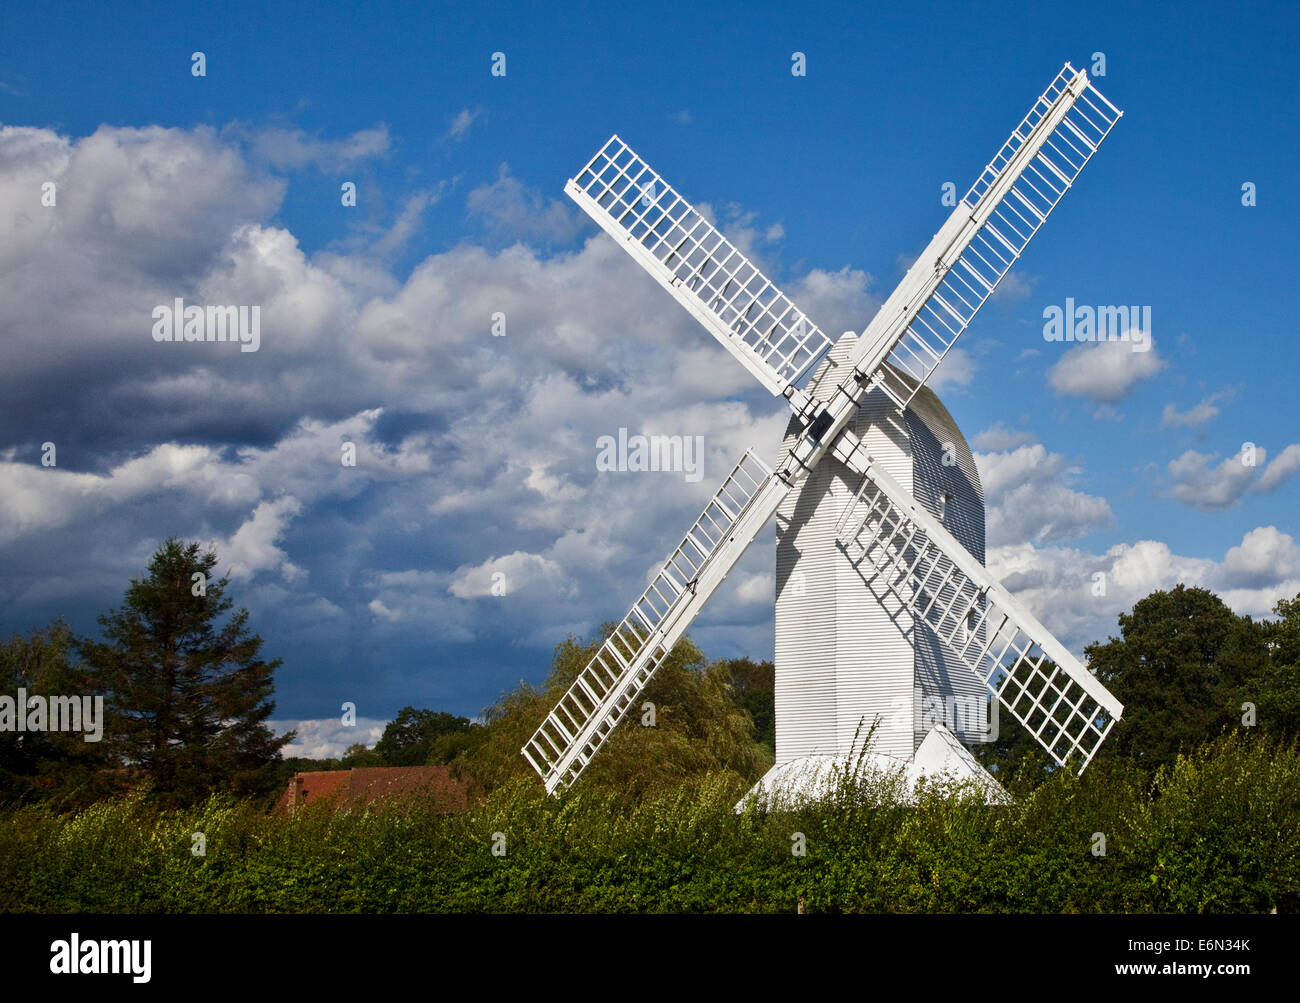 Lowfield Heath Windmill, West Sussex, England - Stock Image